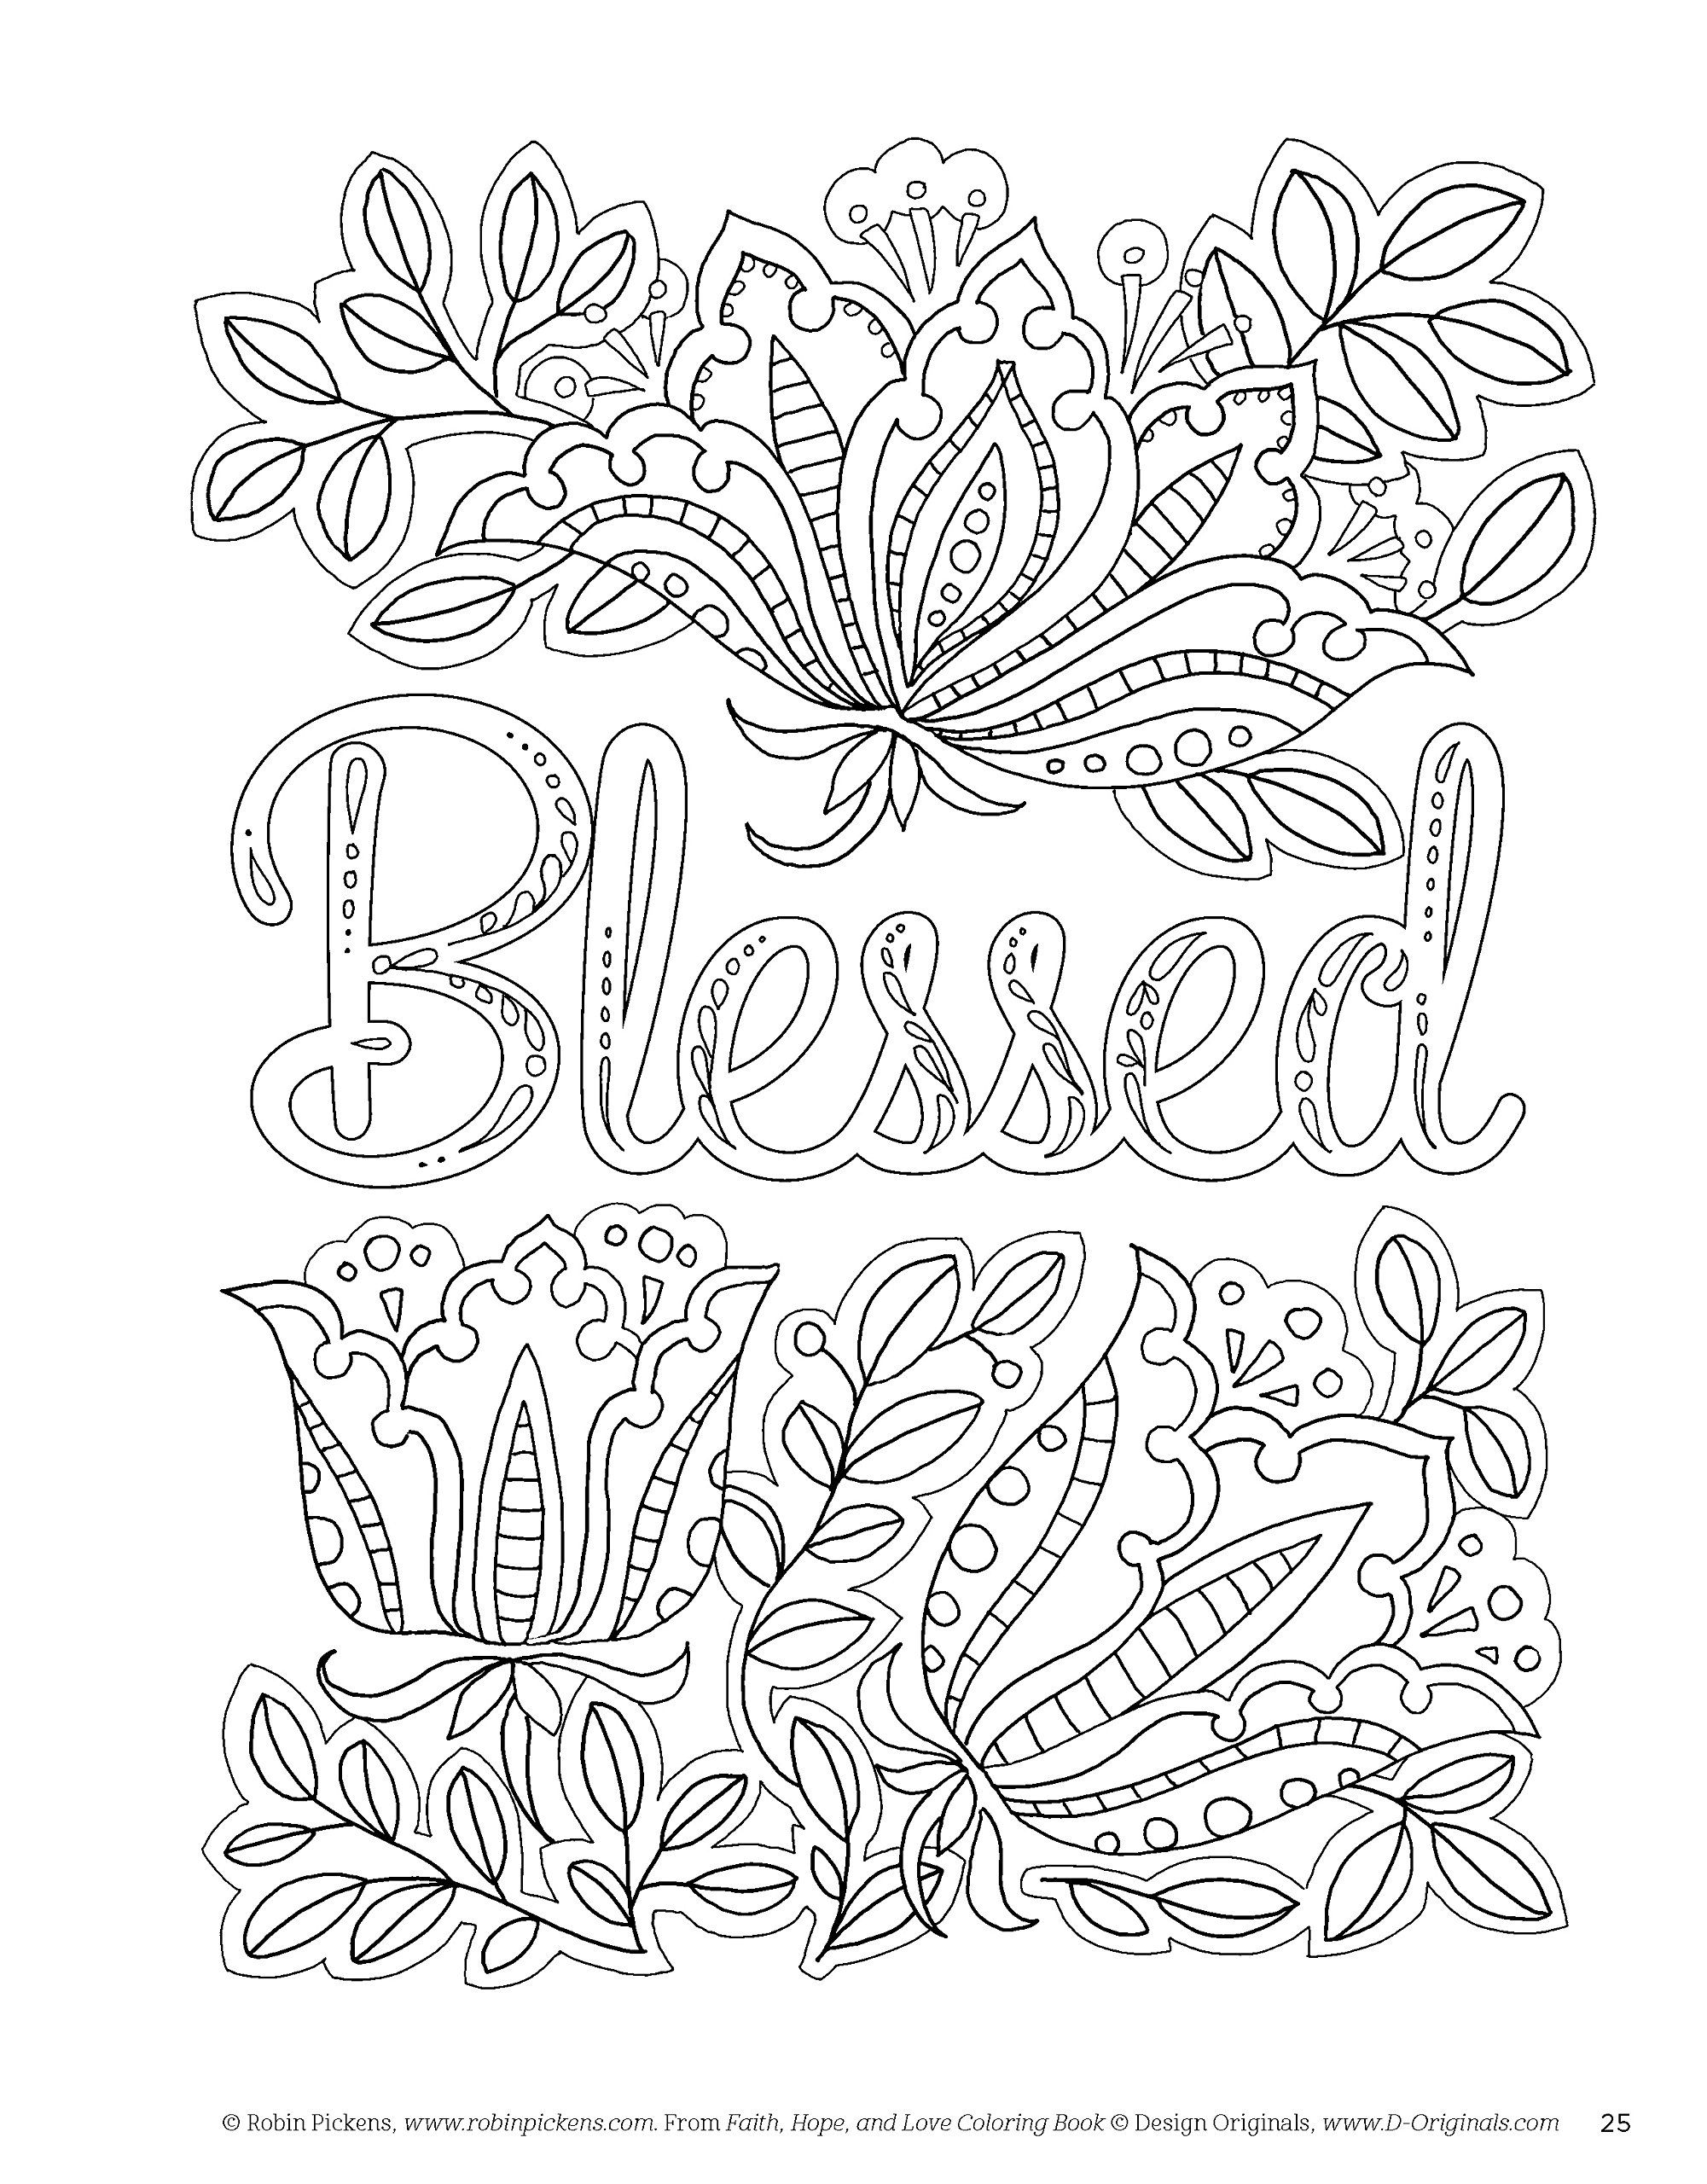 - Amazon.com: Faith, Hope, And Love Coloring Book (Creative Faith